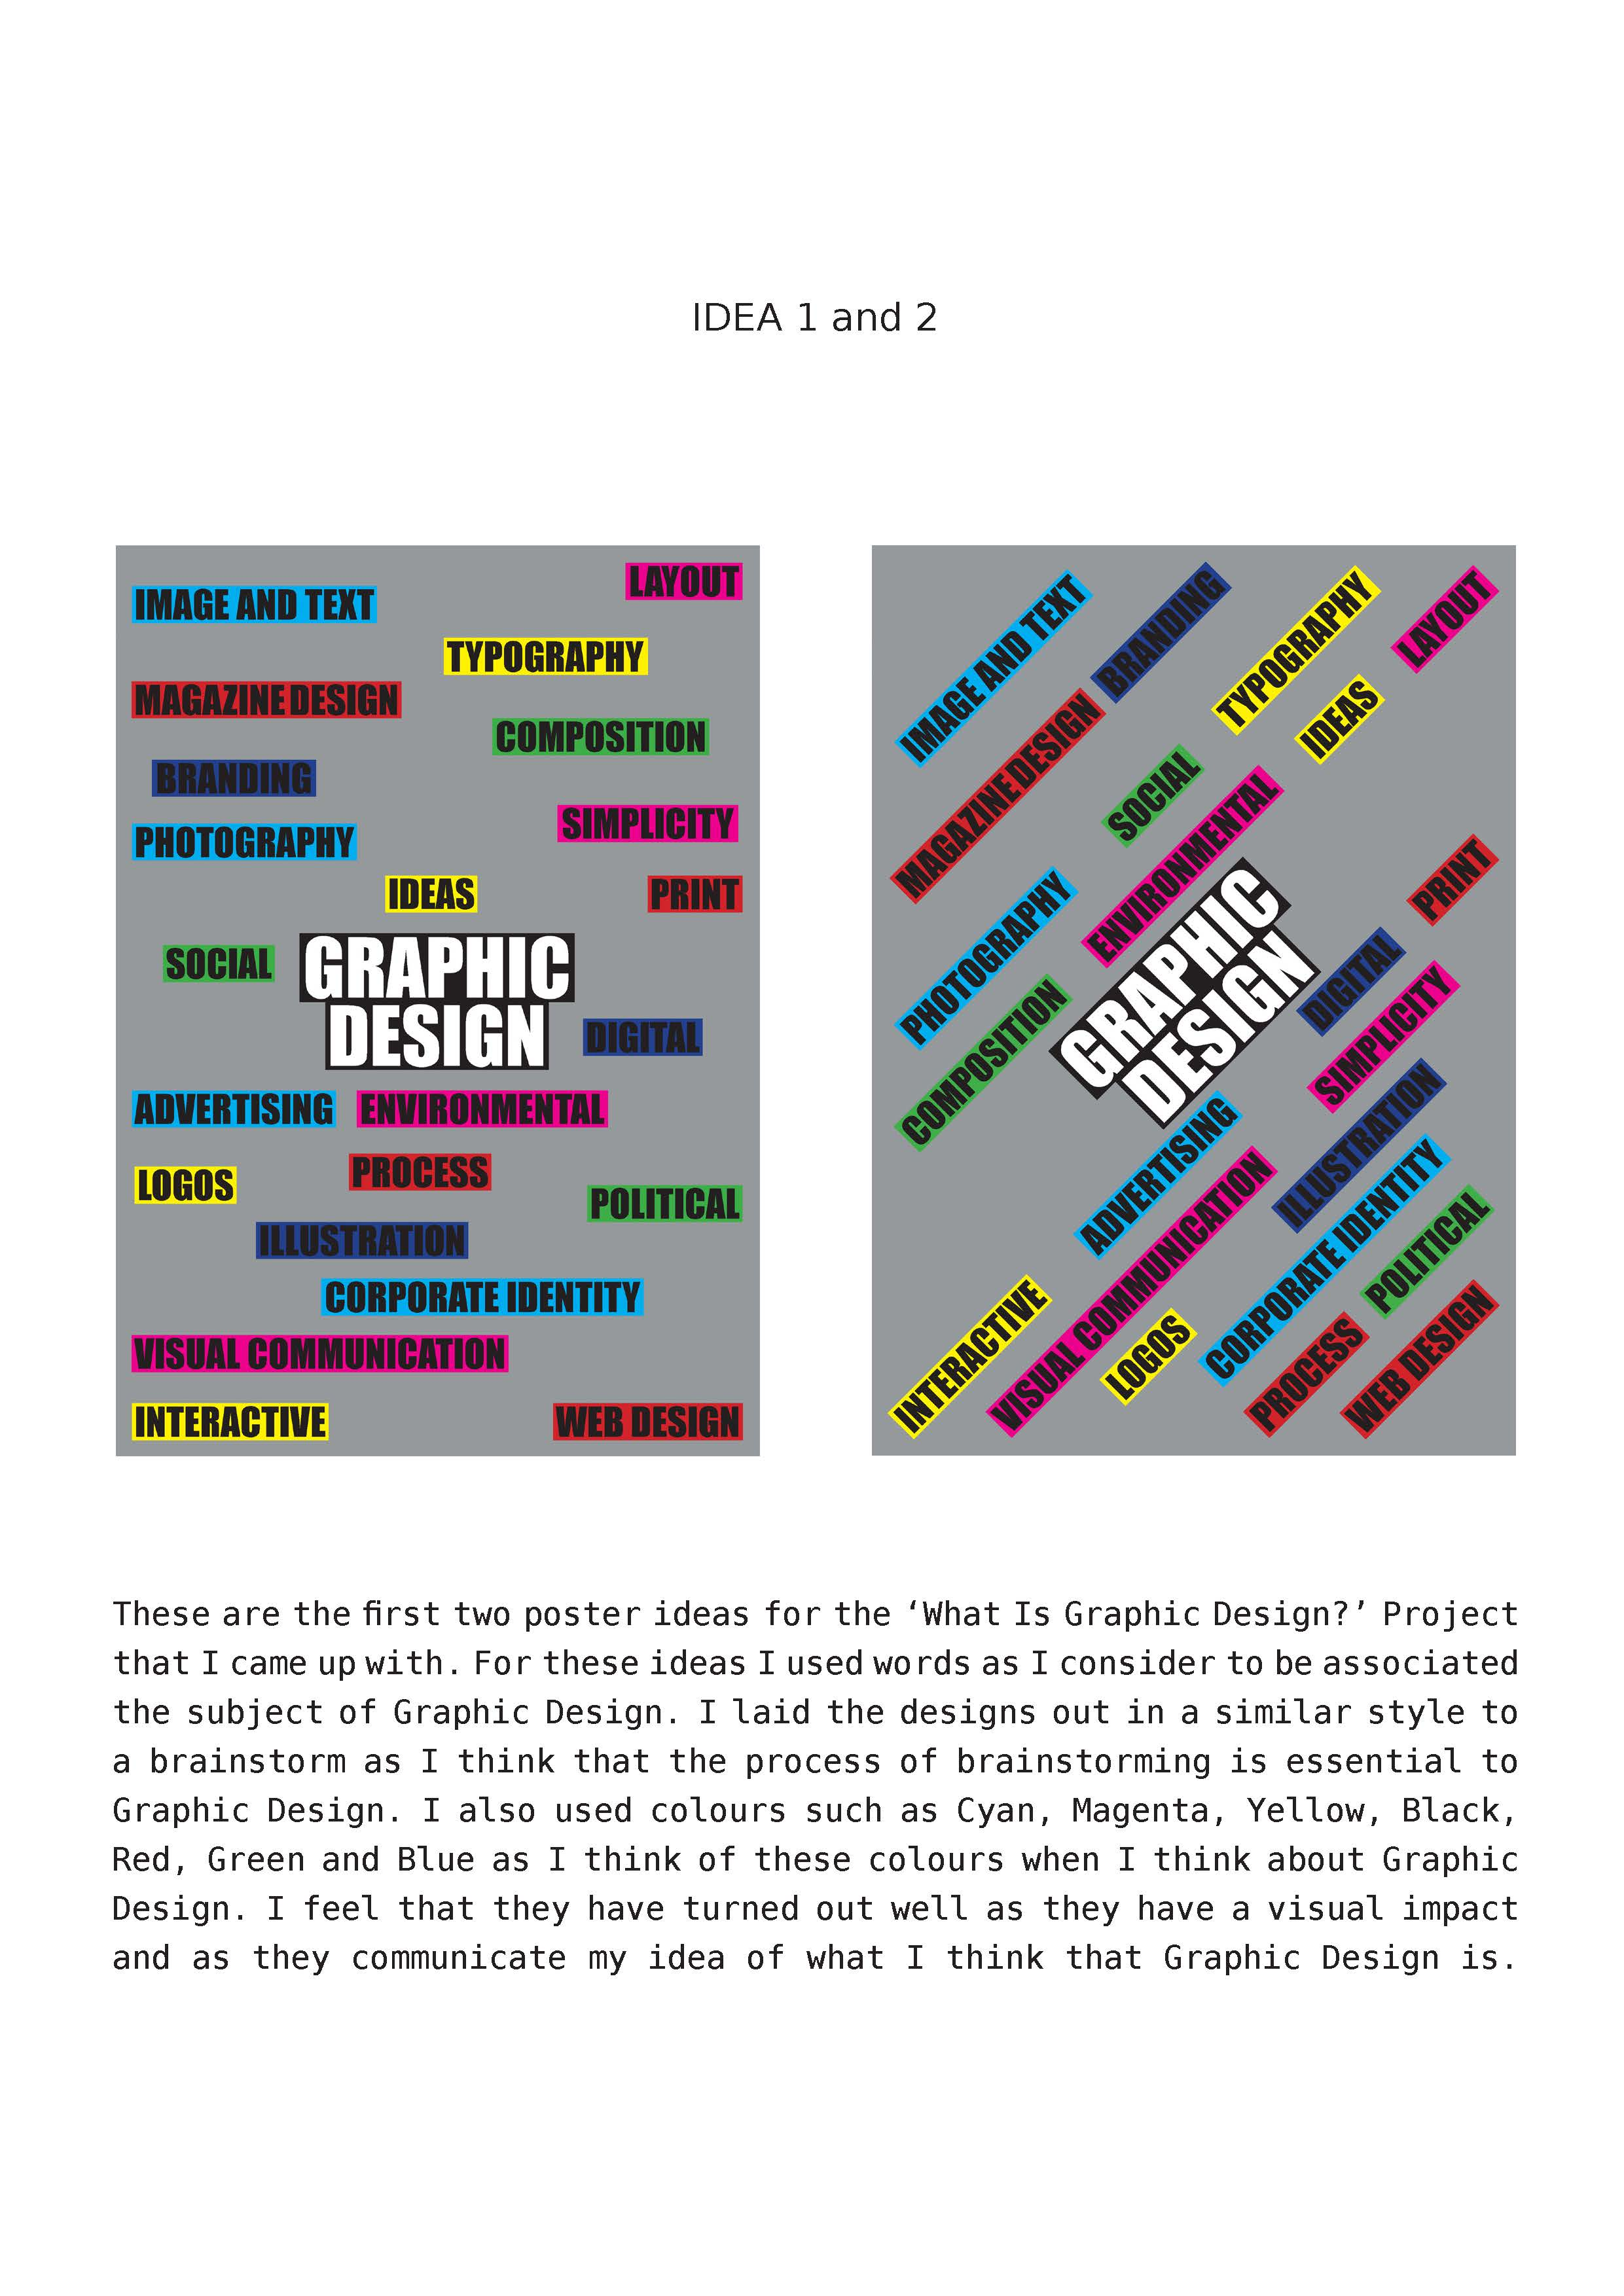 project 7 what is graphic design ideas development and final idea